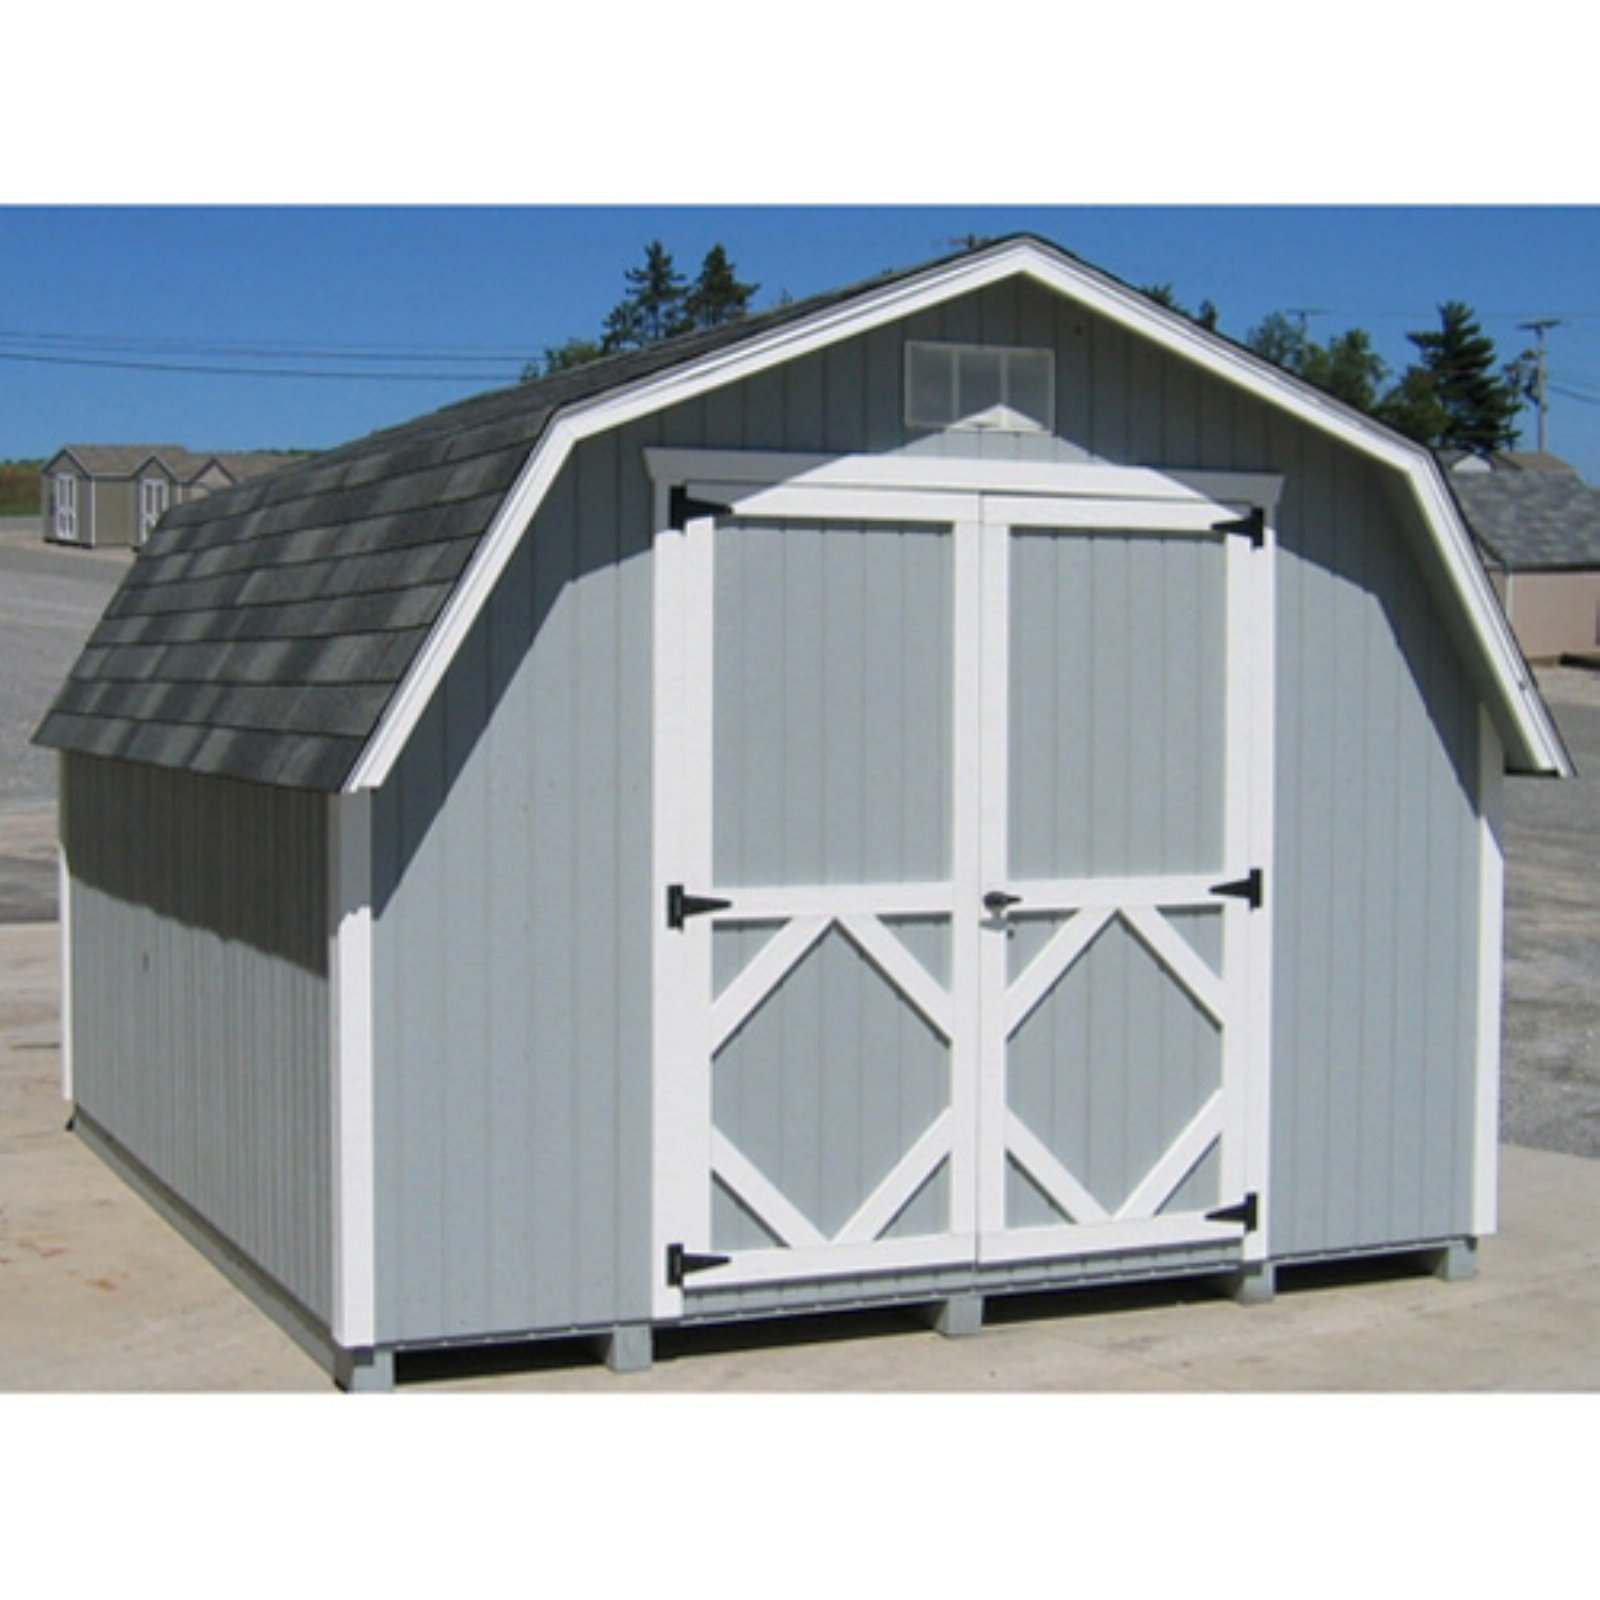 Little Cottage 16 x 12 ft. Classic Wood Gambrel Barn Panelized Storage Shed